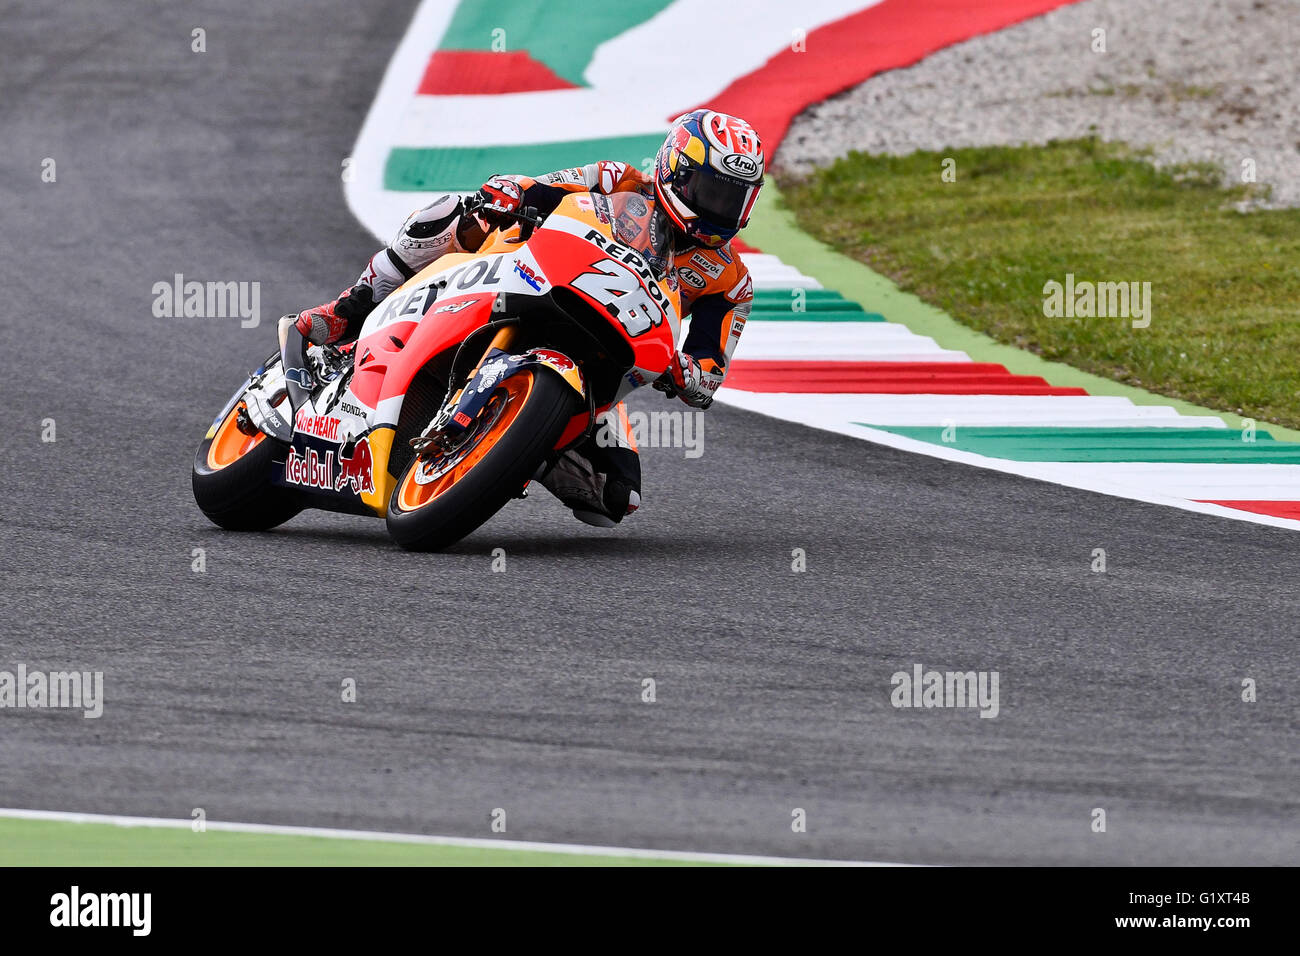 d6e35257f2 MotoGP. TIM Italian Grand Prix Practice. Dani Pedrosa (Repsol Honda) during  the free practice sessions. Credit  Action Plus Sports Alamy Live News